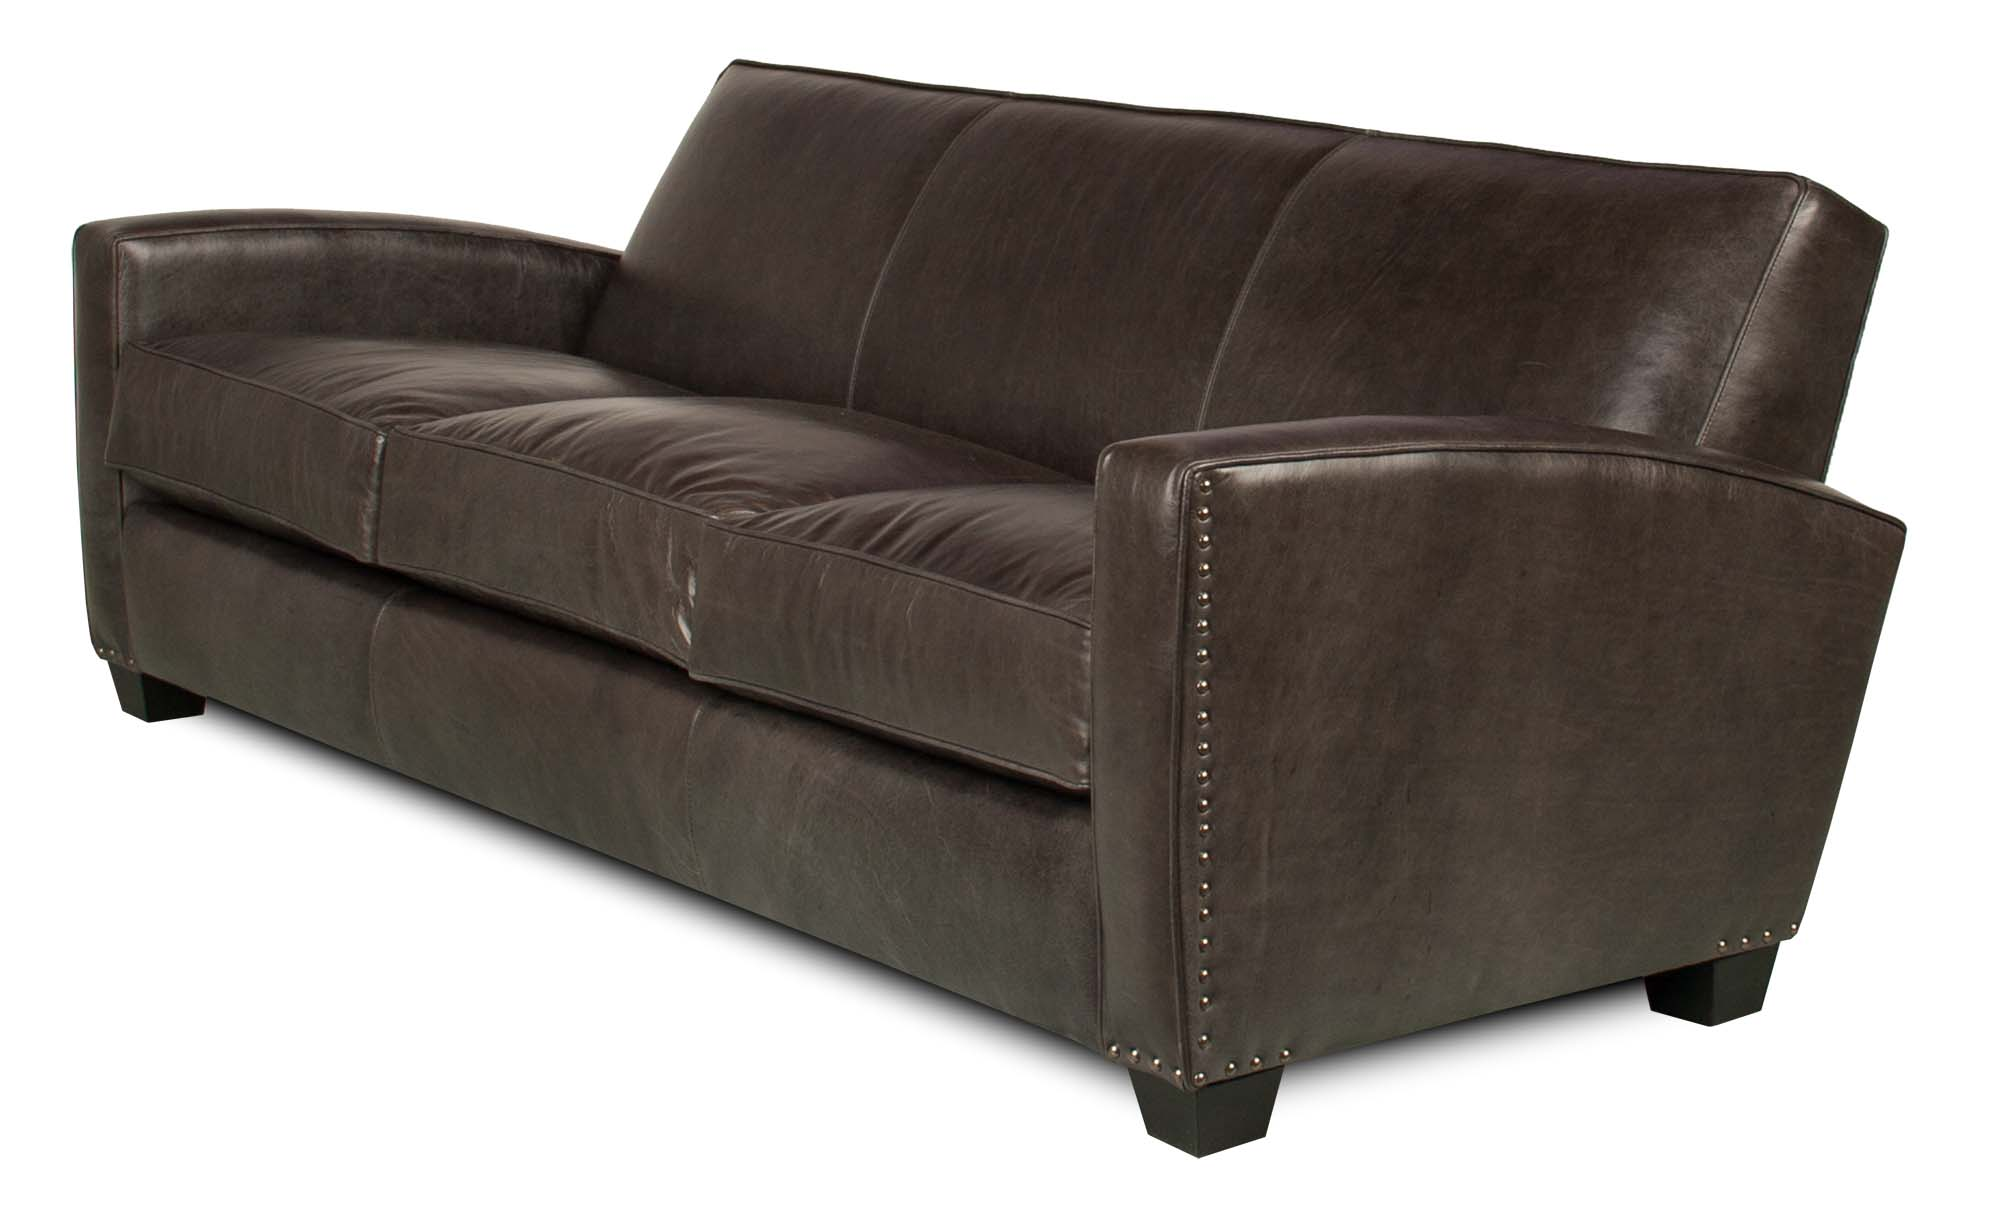 James Leather Furniture